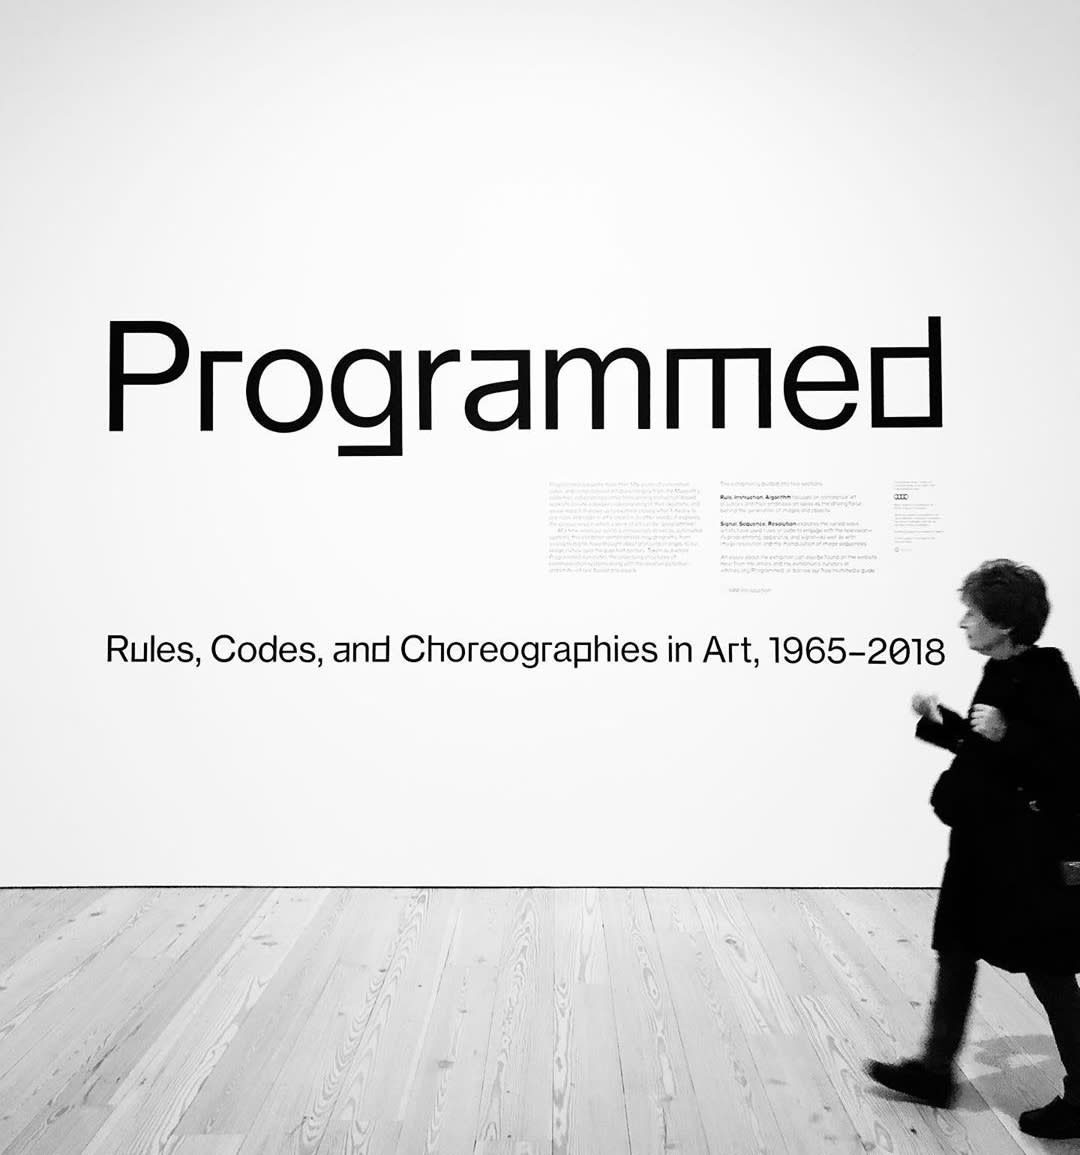 Programmed Exhibition